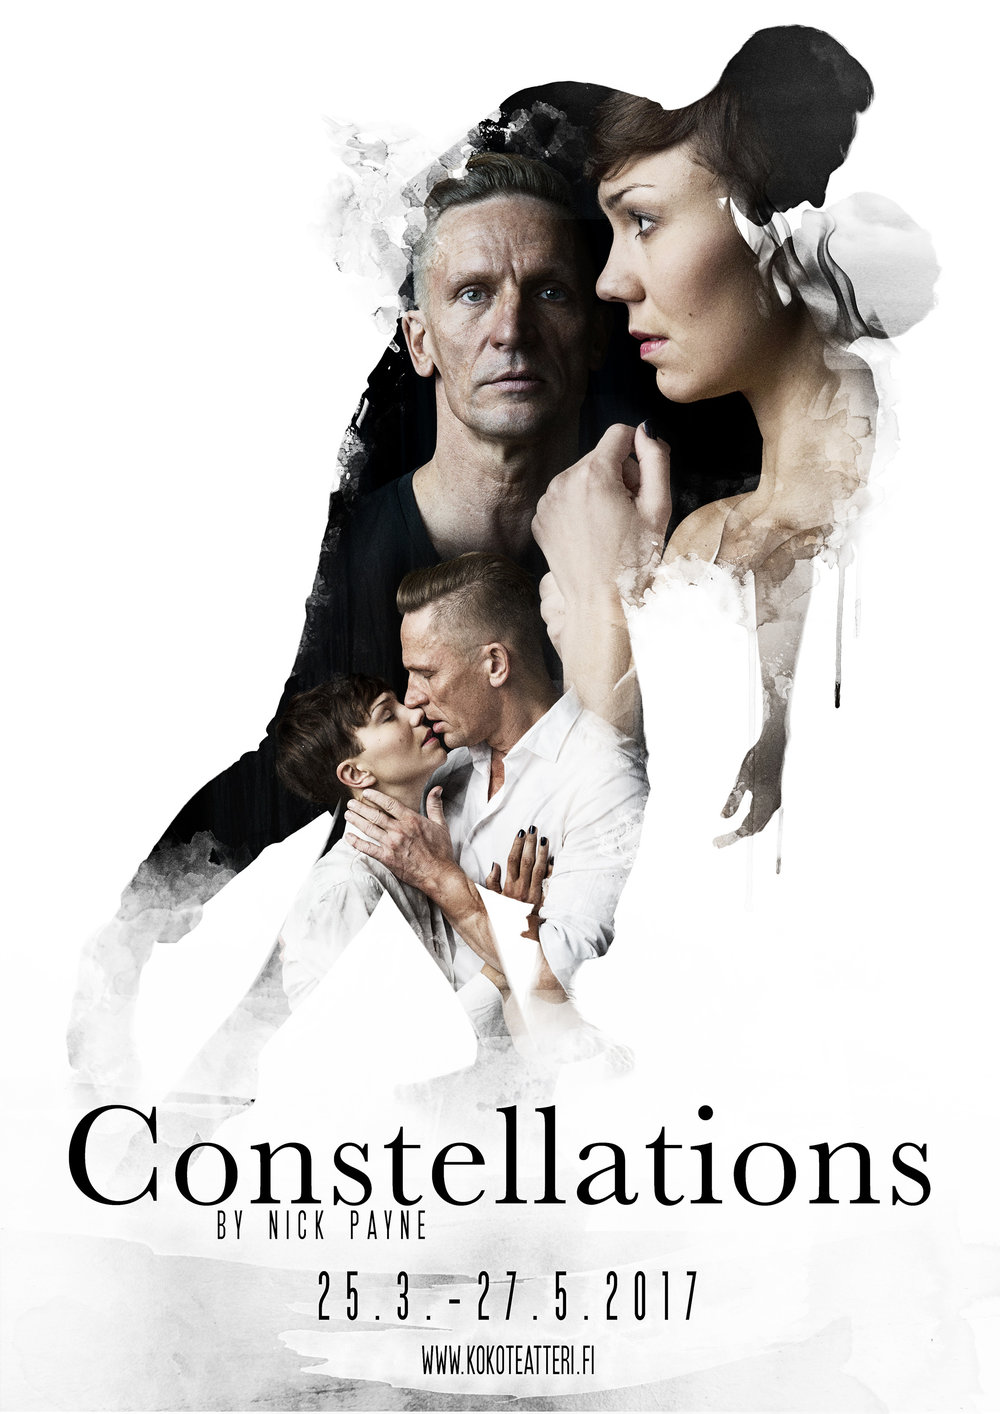 ConstellationsA4juliste.jpg